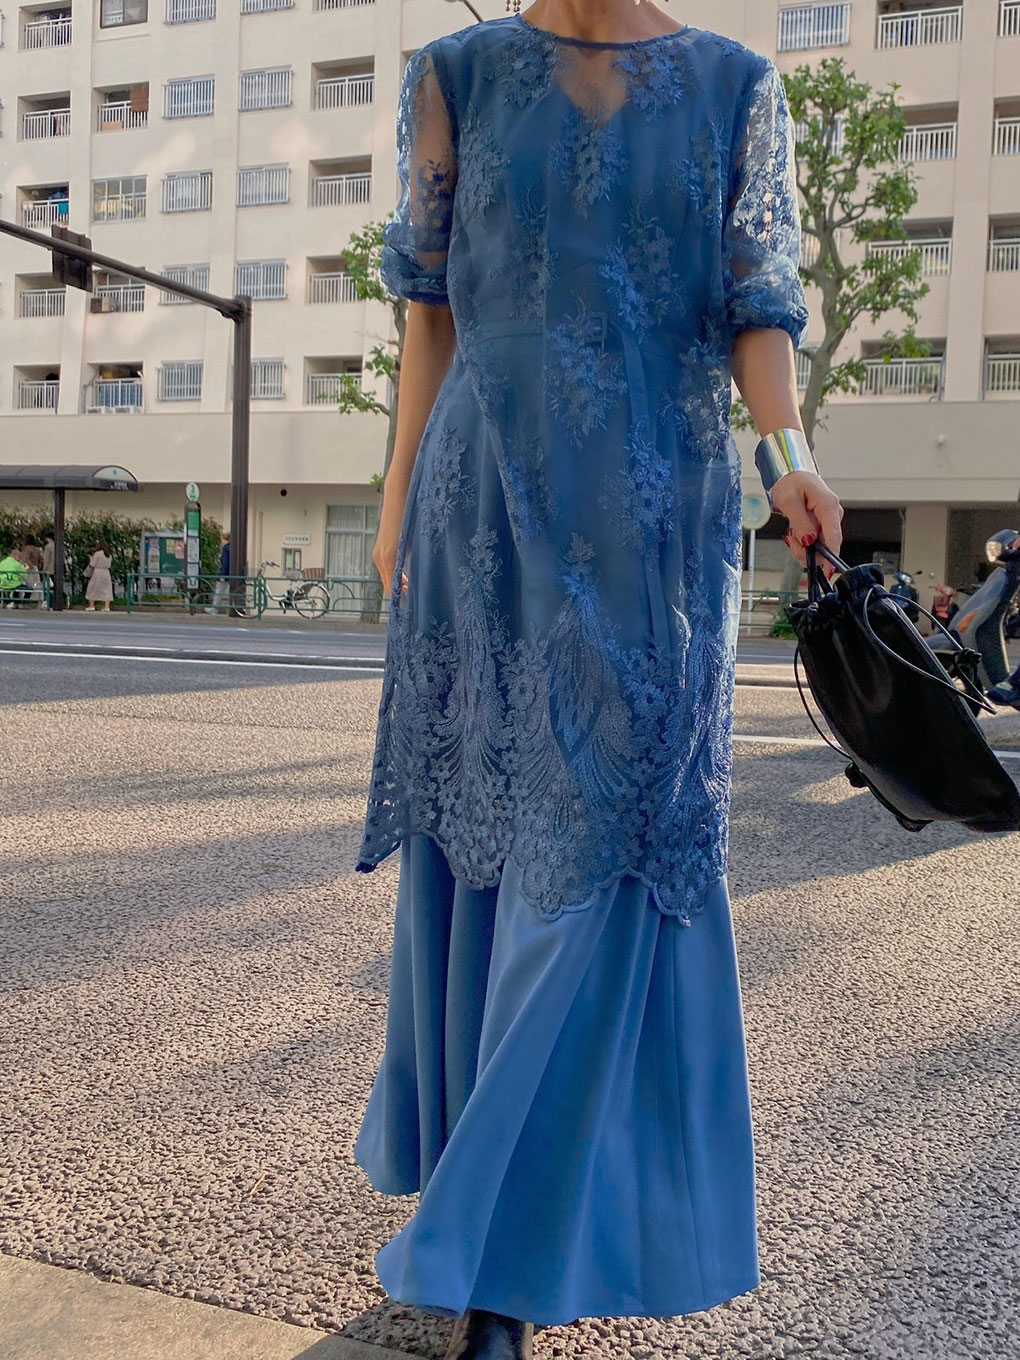 3WAY LAYERED LACE DRESS